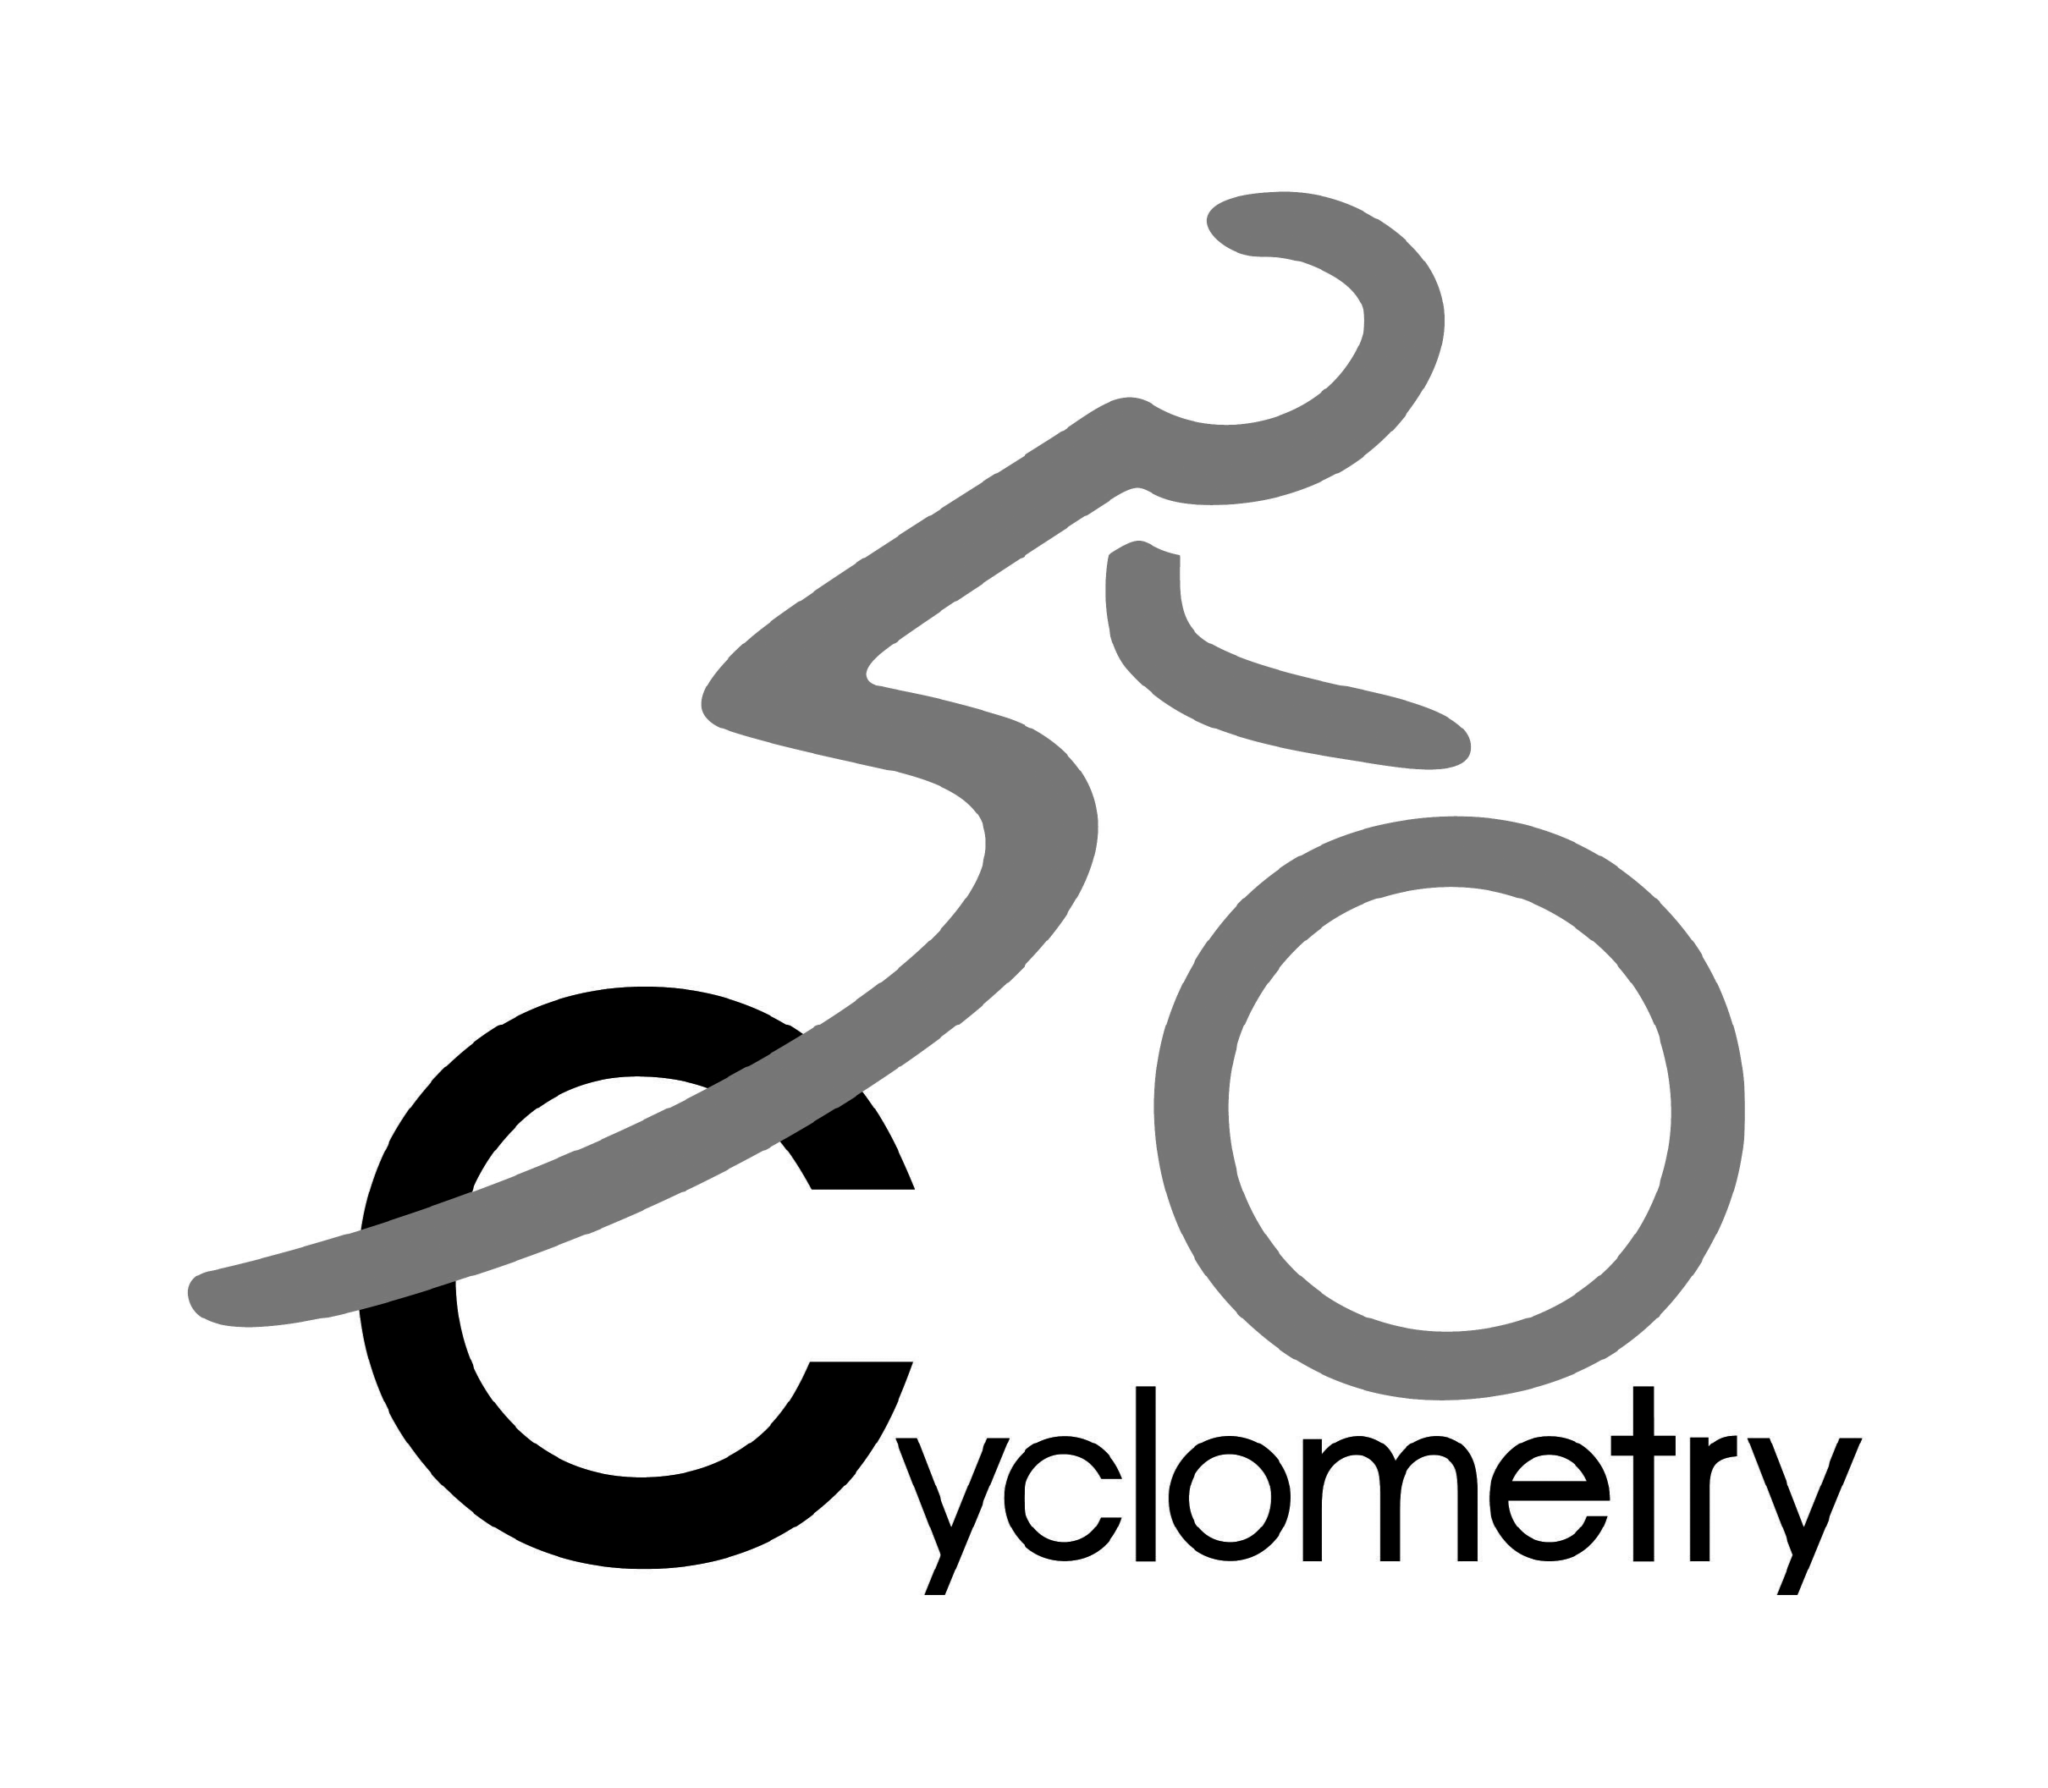 cyclometry